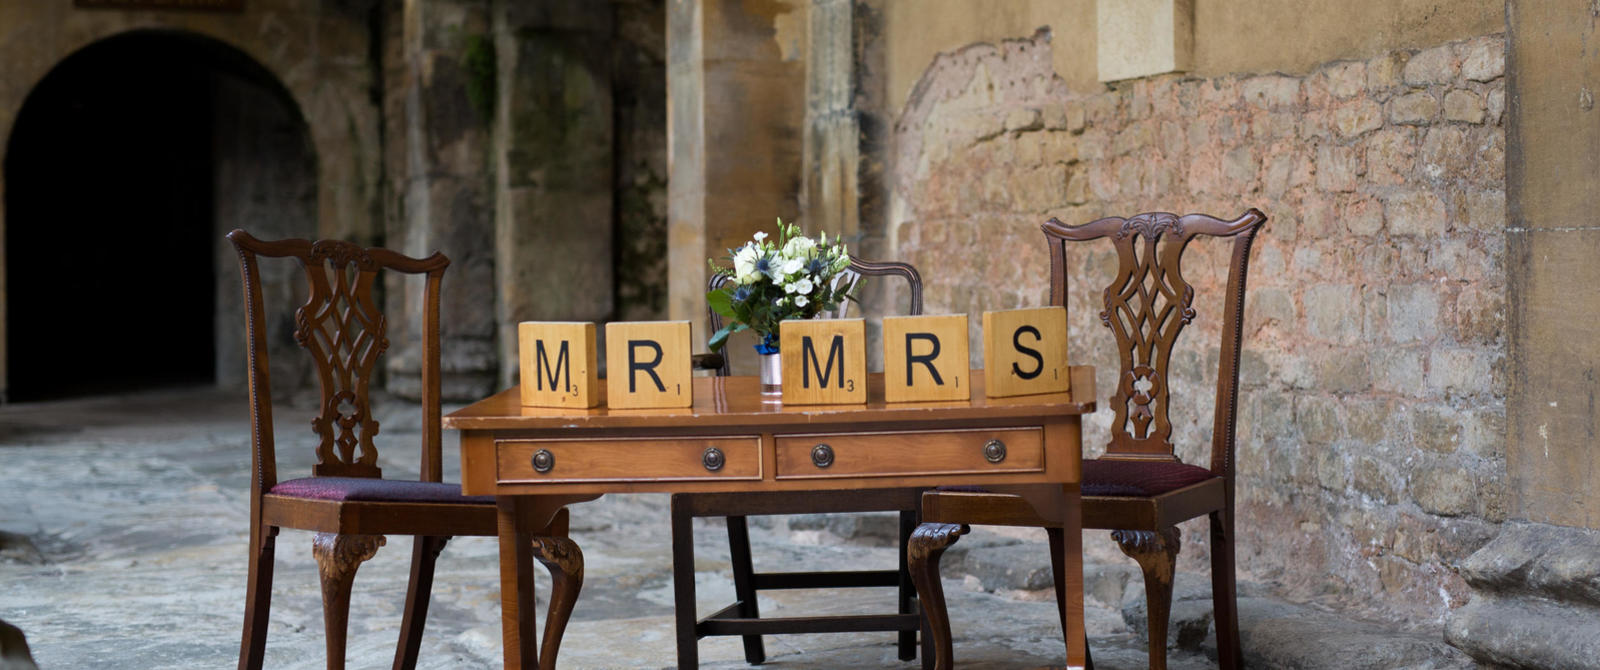 Just married, wedding at the Roman Baths